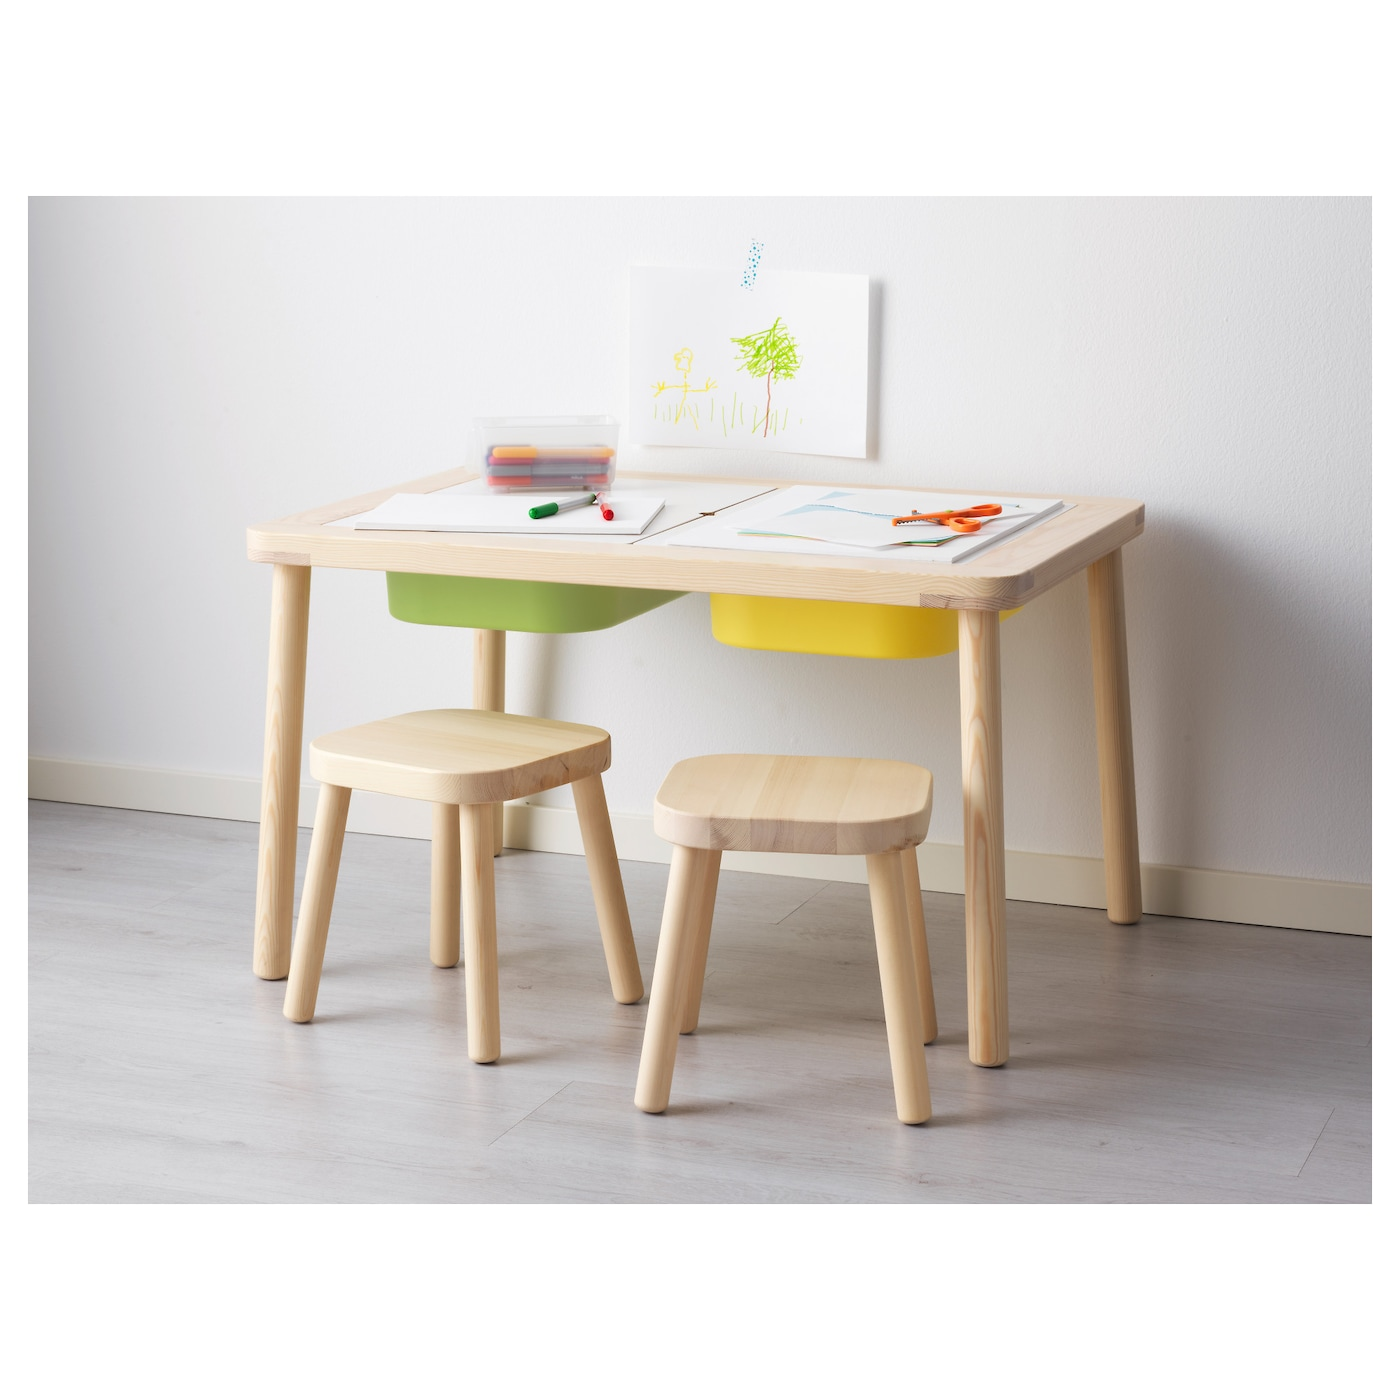 Flisat children 39 s table 83x58 cm ikea for Chaise de table blanche